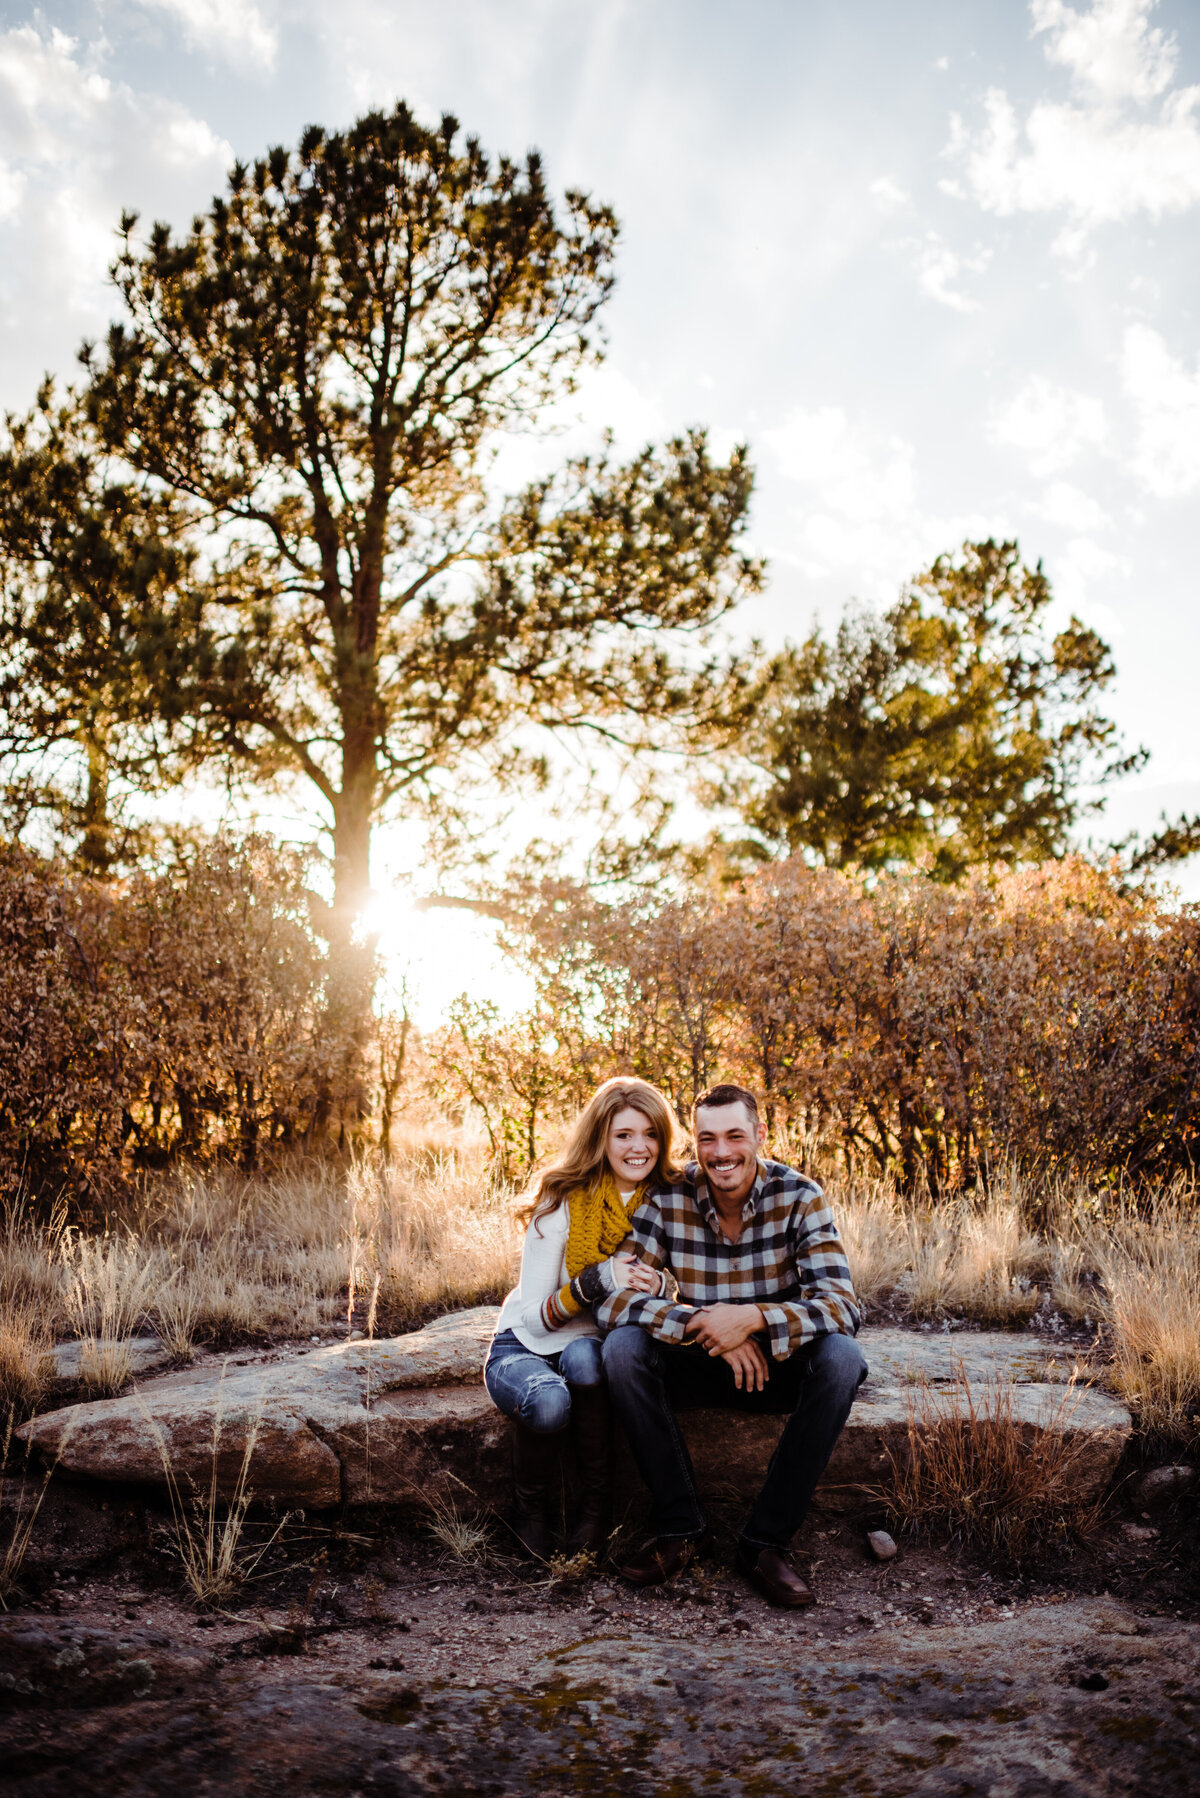 Castlewood Canyon Engagement Session - Randy and Ashley Studios - Justin and Jordan-131